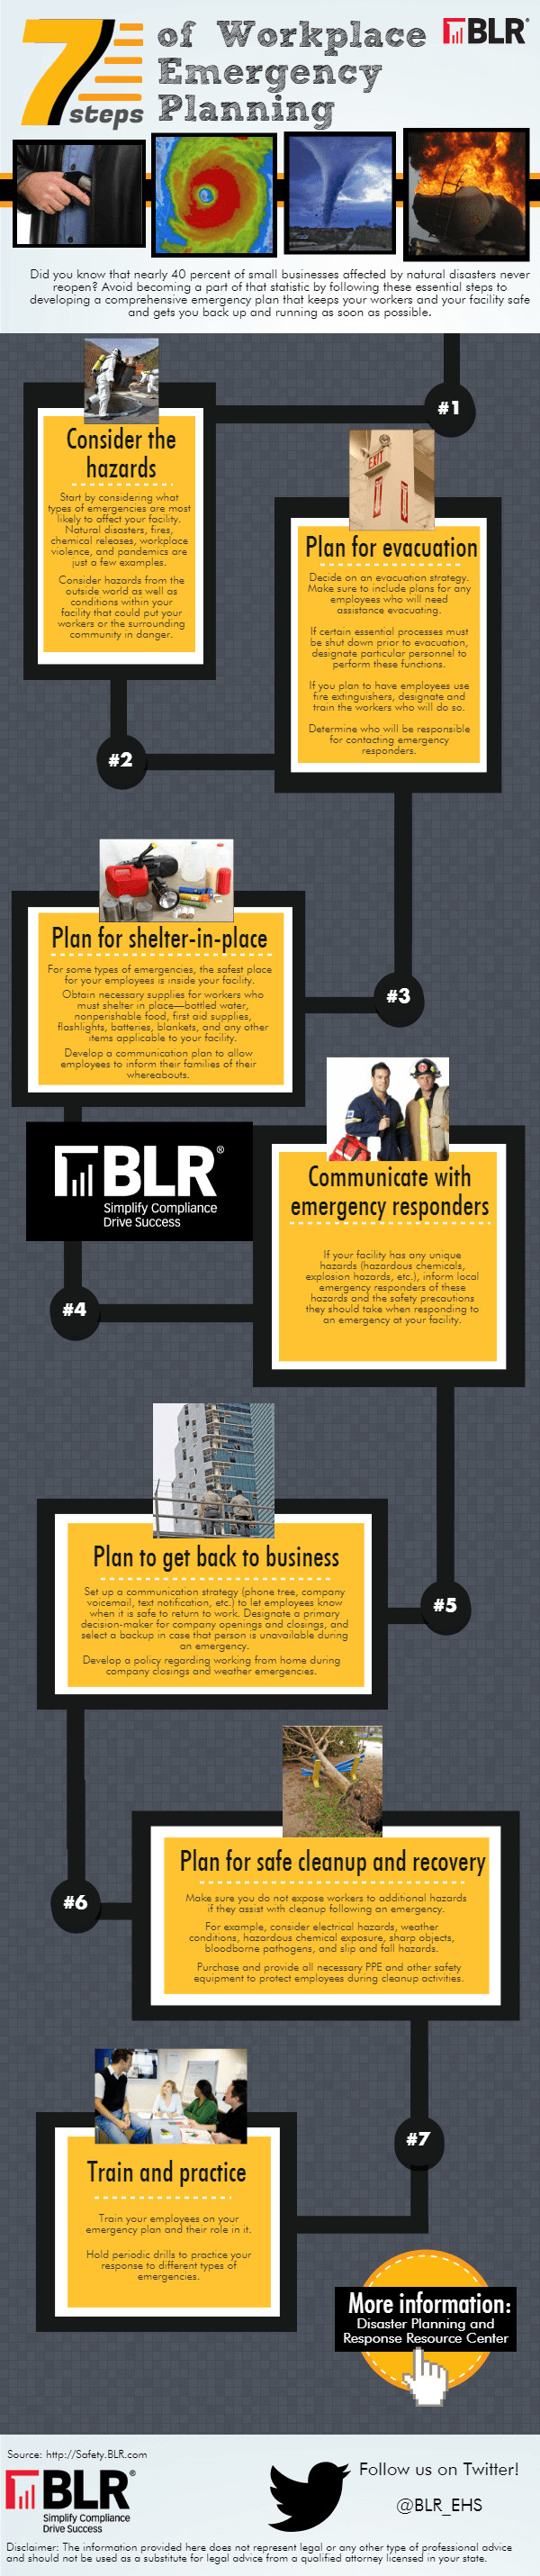 7 Steps of Workplace Emergency Planning